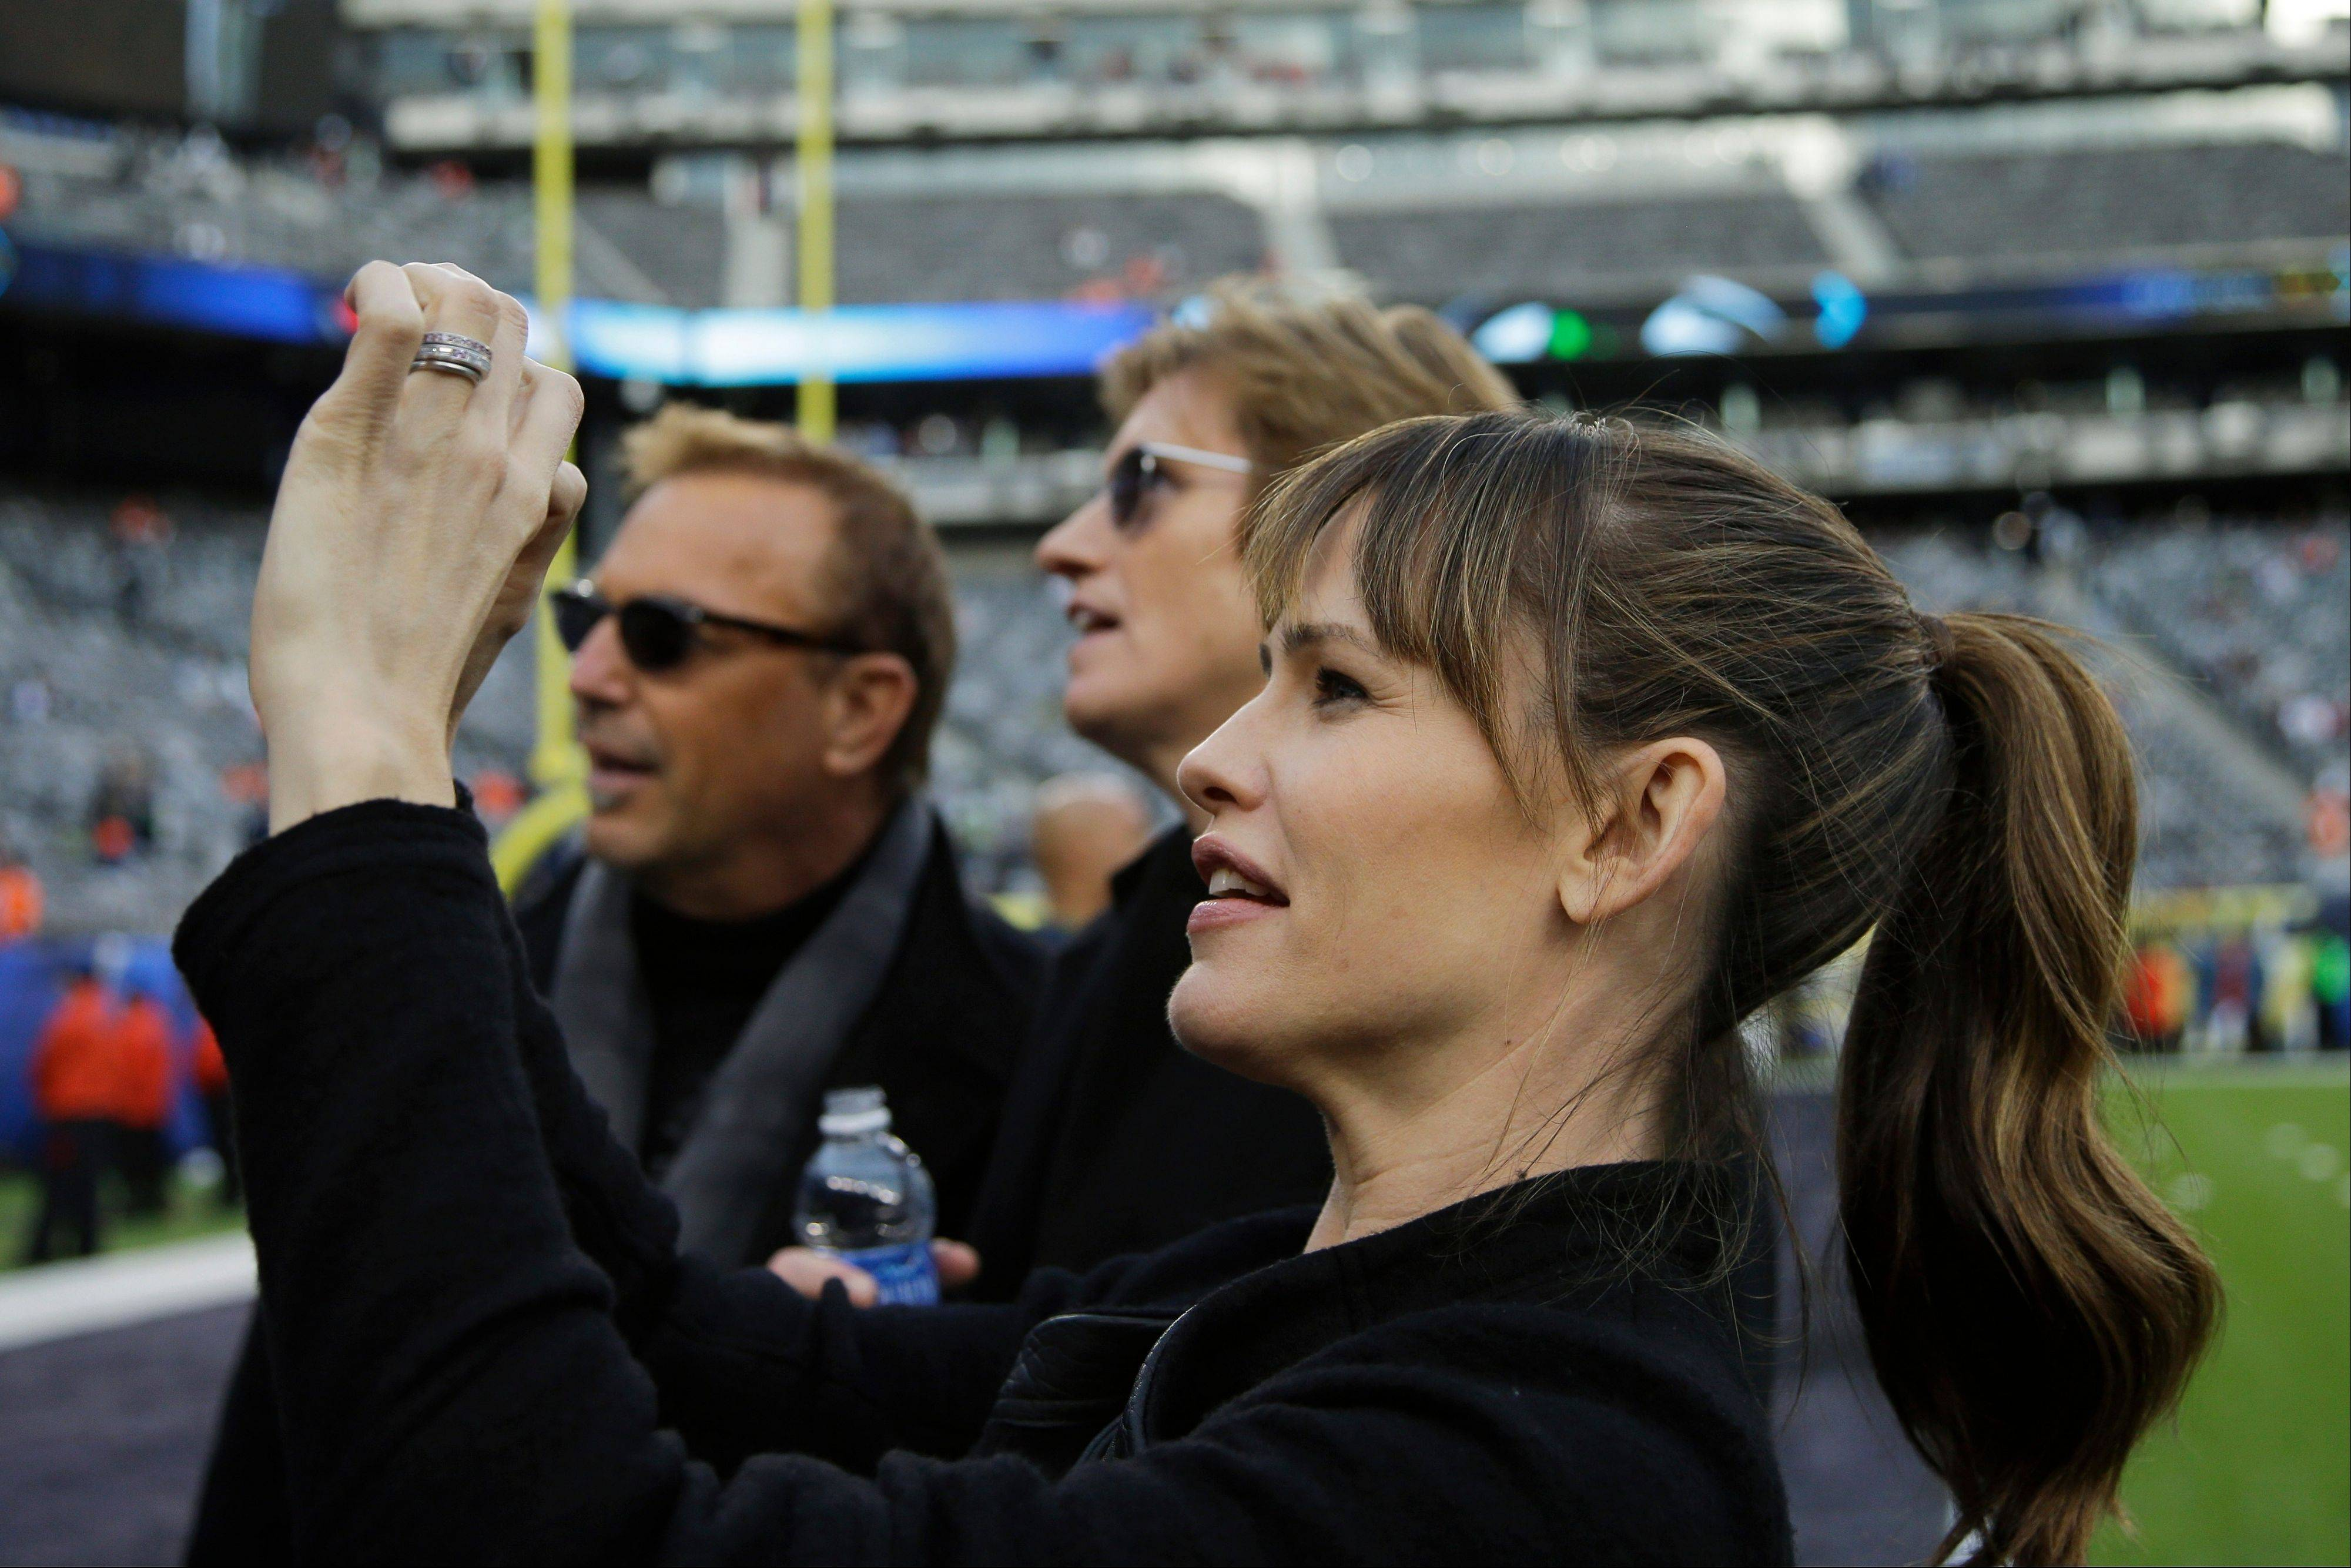 Actress Jennifer Garner takes a photo as actors Kevin Costner, left, and Denis Leary look on, at MetLife Stadium before the NFL Super Bowl XLVIII football game.